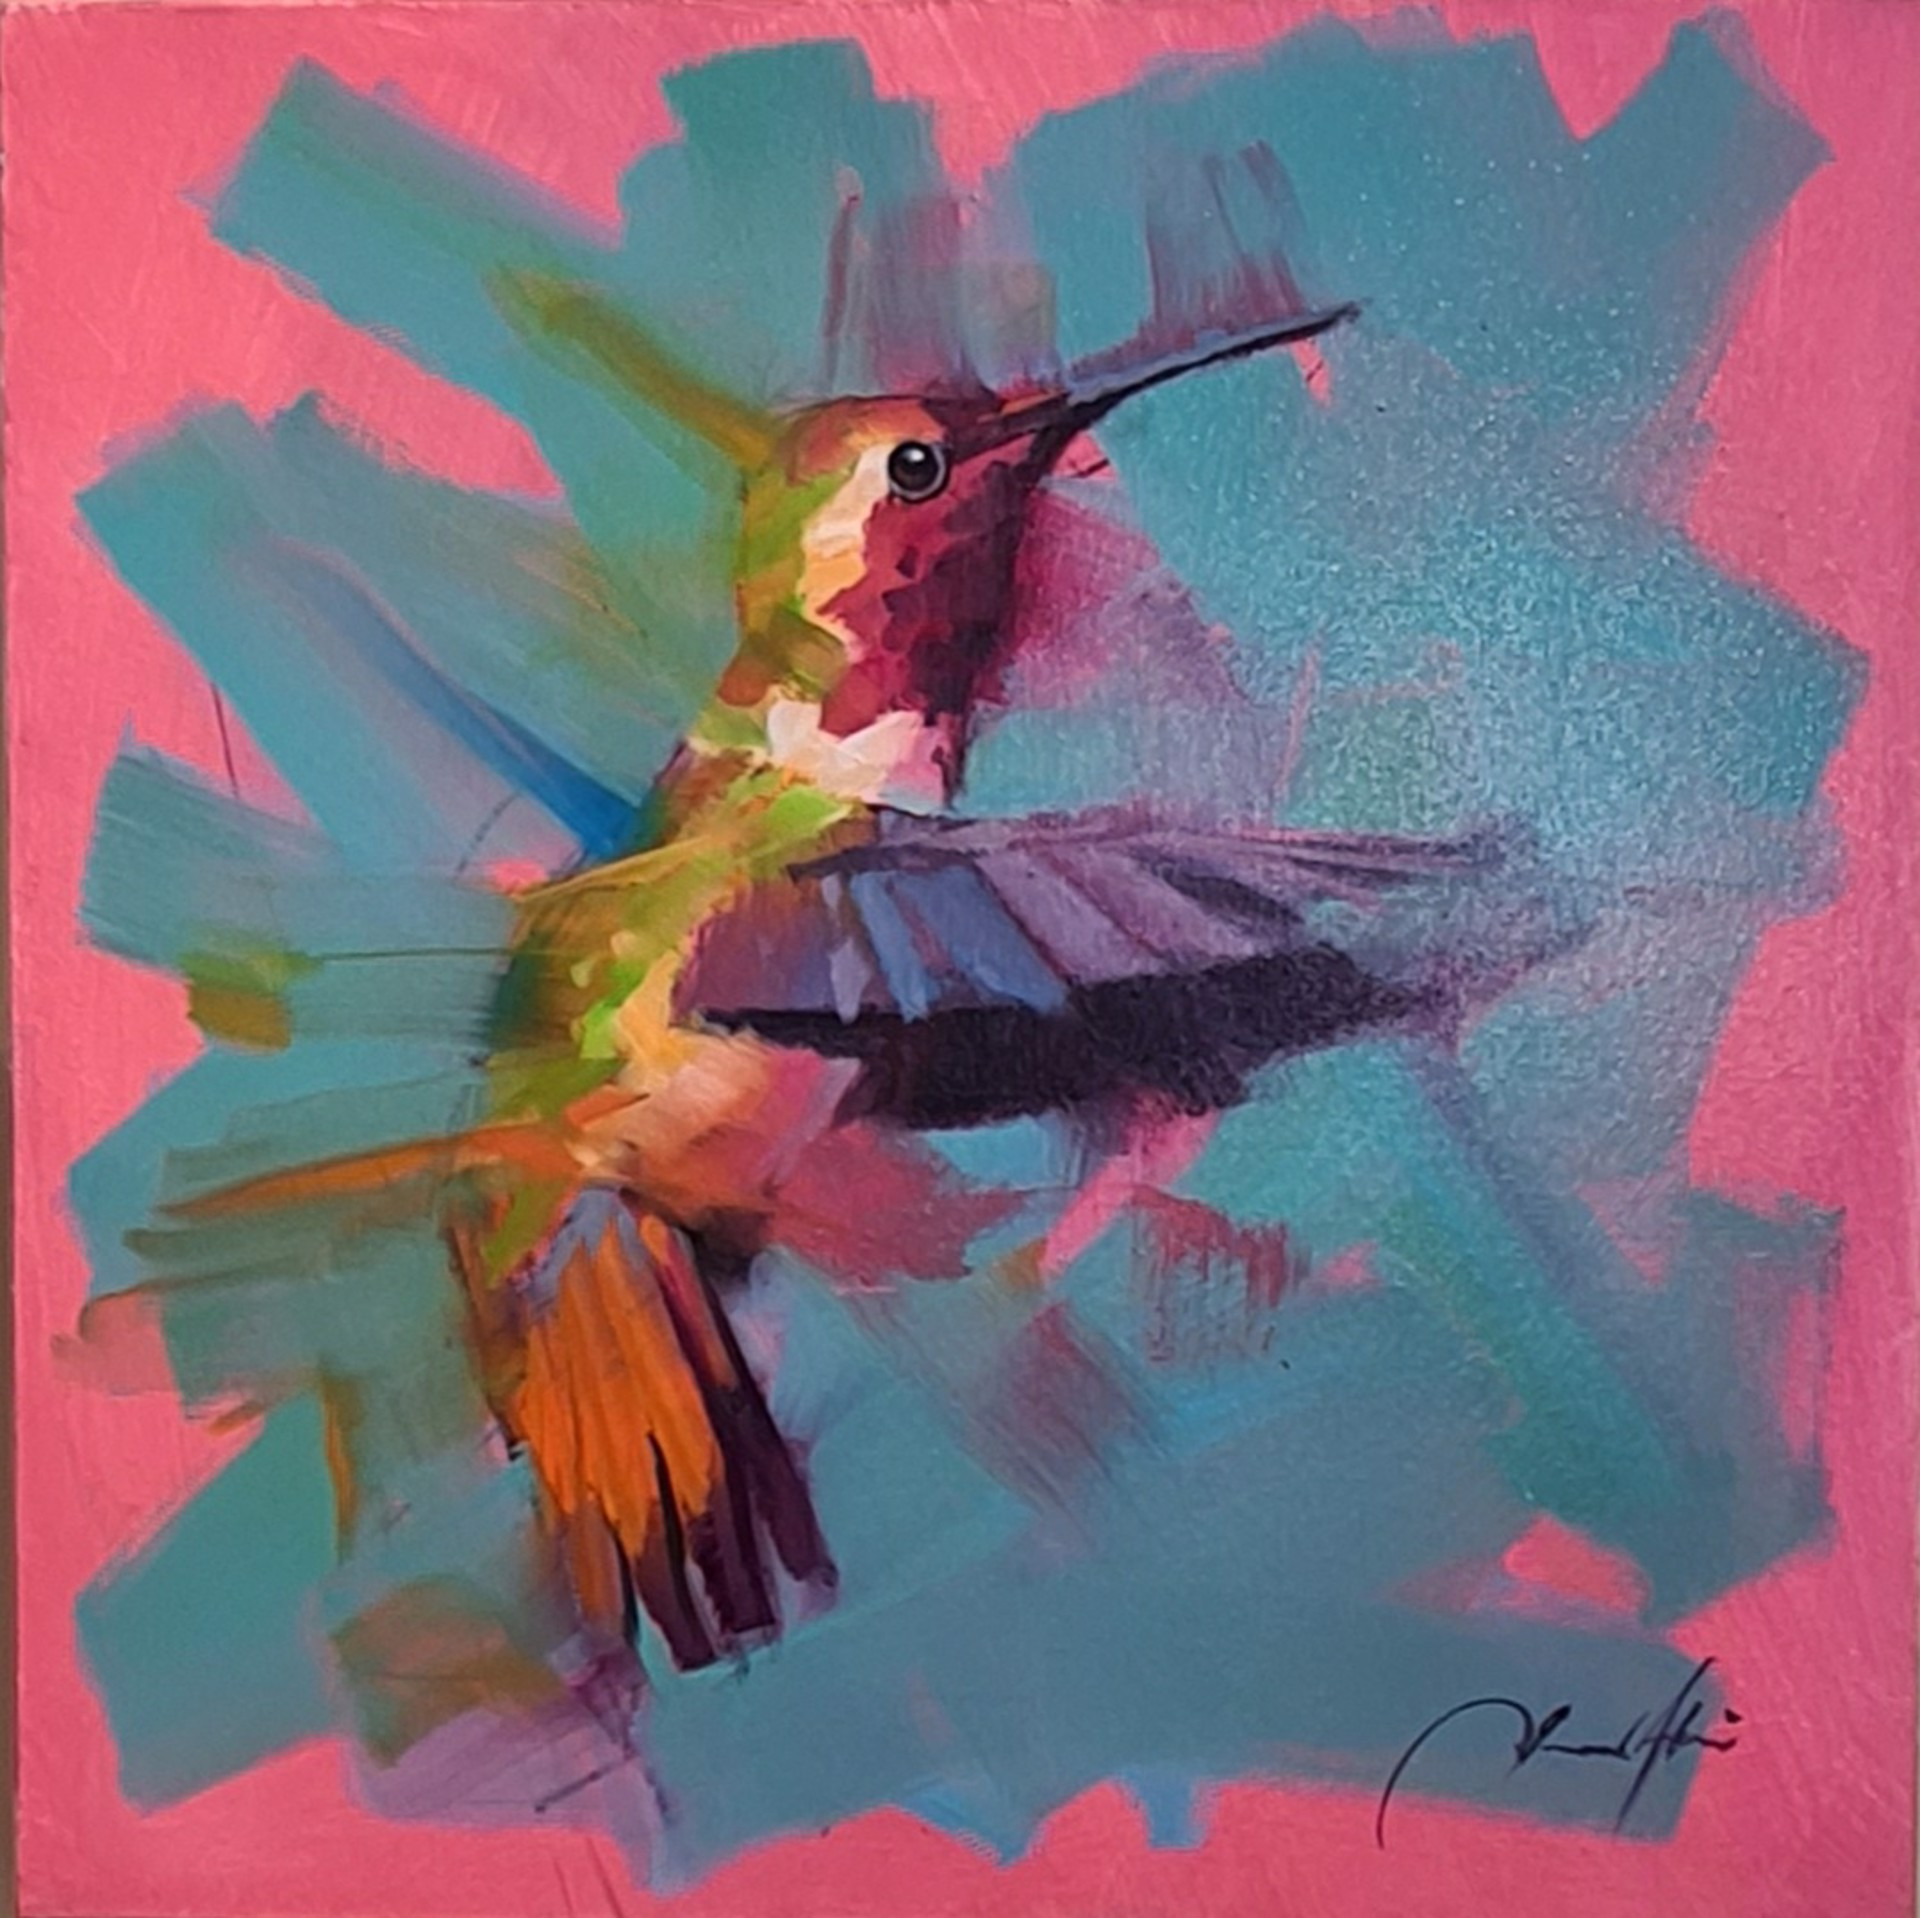 Hummingbird XVIII by Jamel Akib